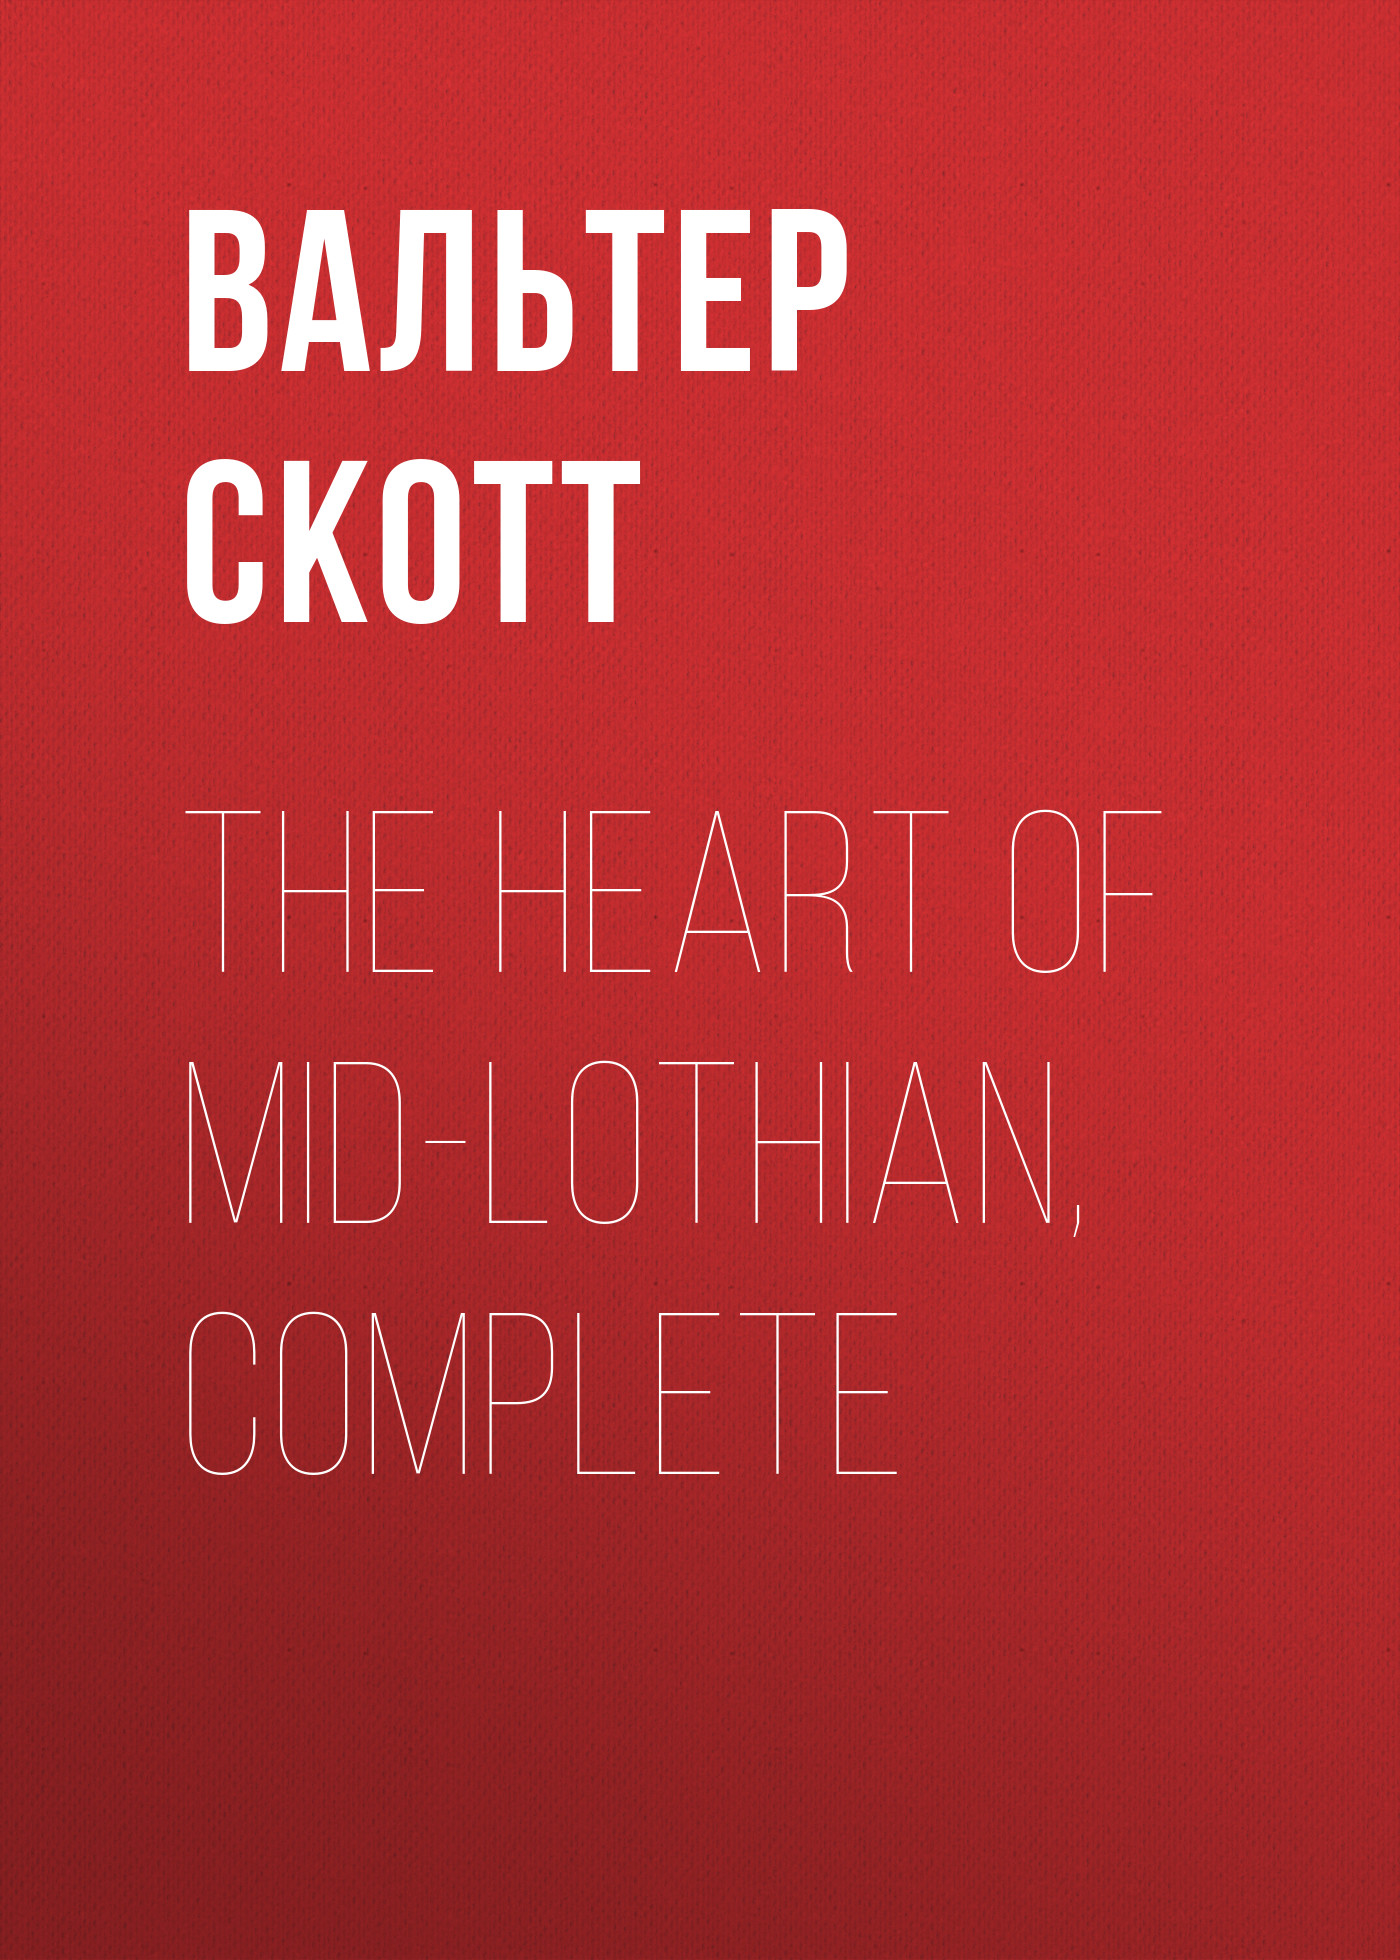 Вальтер Скотт The Heart of Mid-Lothian, Complete